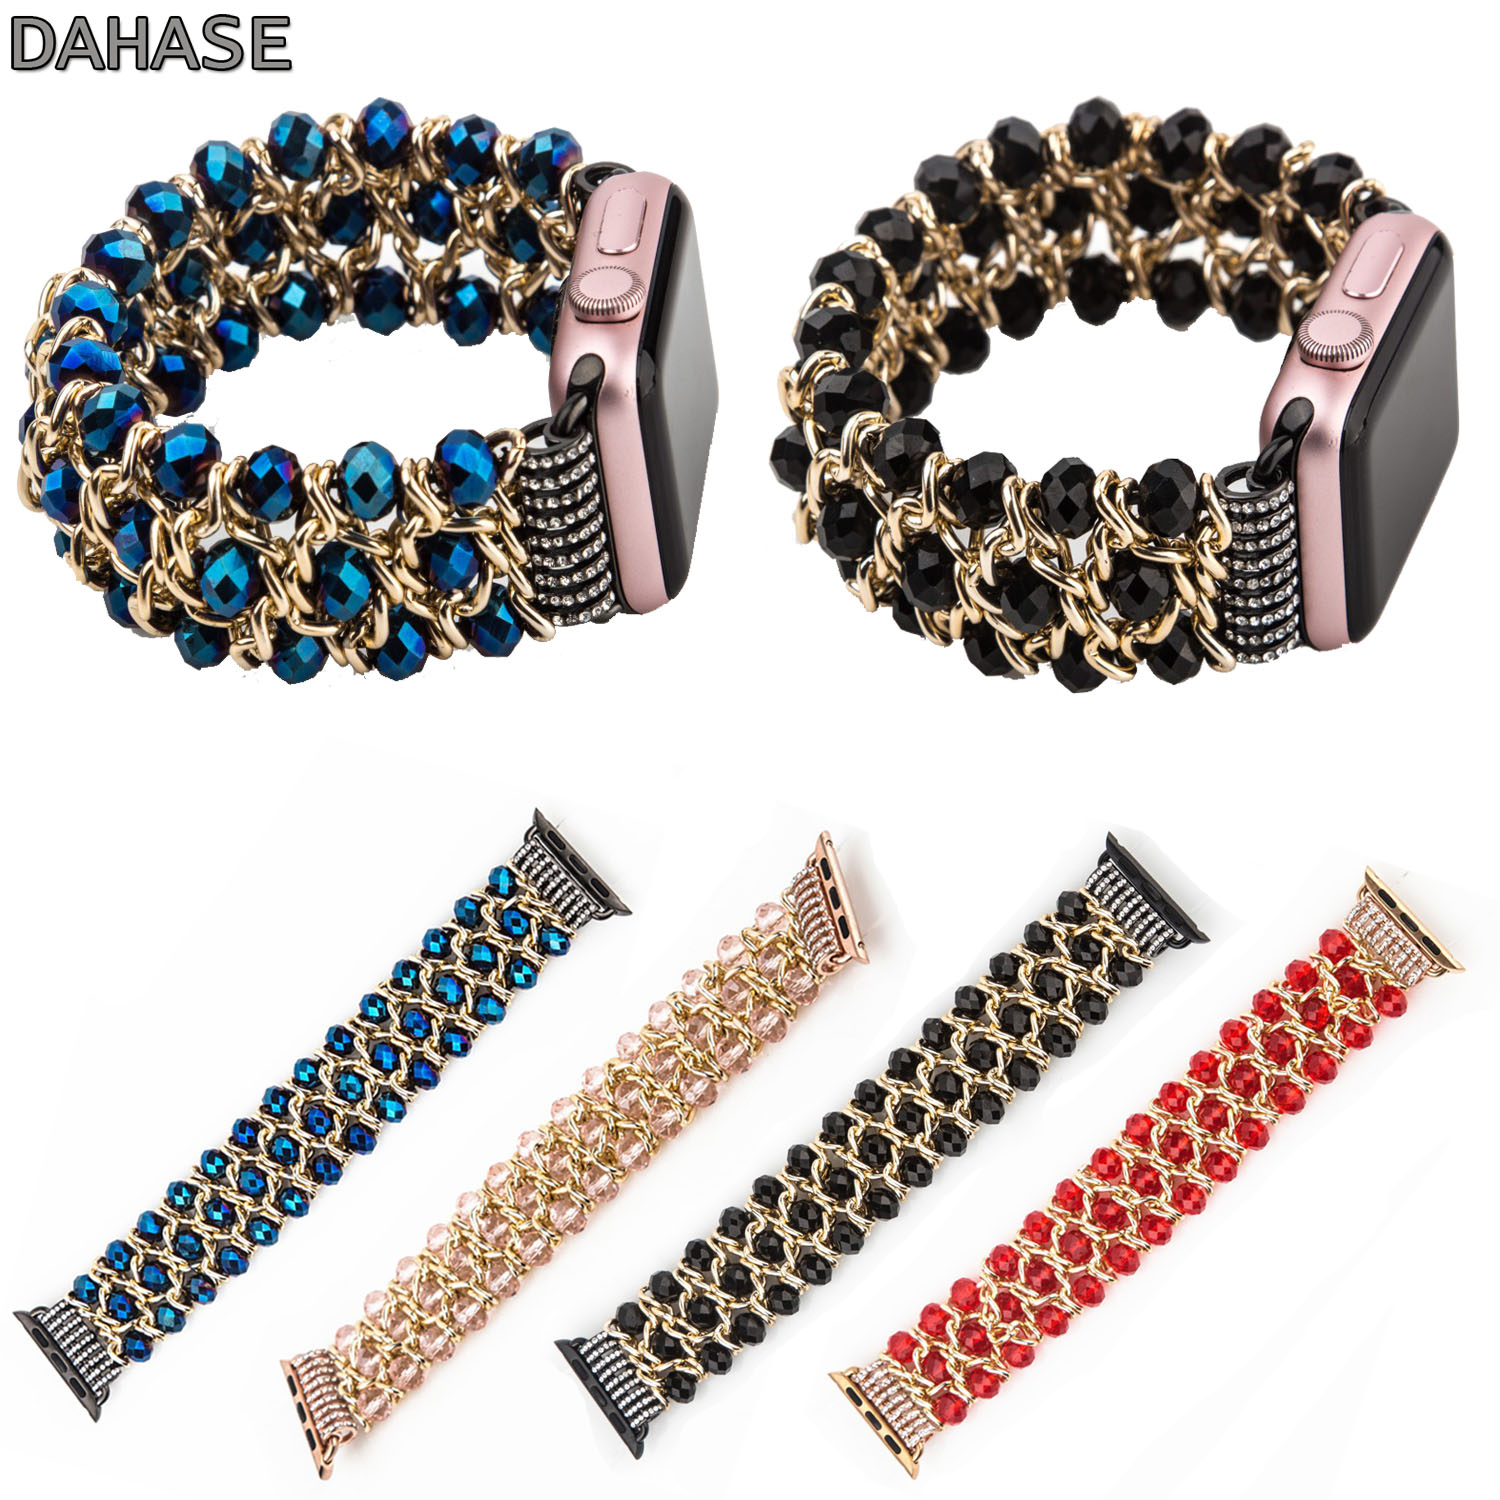 DAHASE Bling Beads Chain Stretch Bracelet for Apple Watch Band 38mm 42mm Strap for iWatch Series 1/2/3 Metal Jewelry Wristband dahase stainless steel link chain strap for apple watch series 3 band 42mm 38mm bracelet for iwatch series 1 2 3 metal wristband